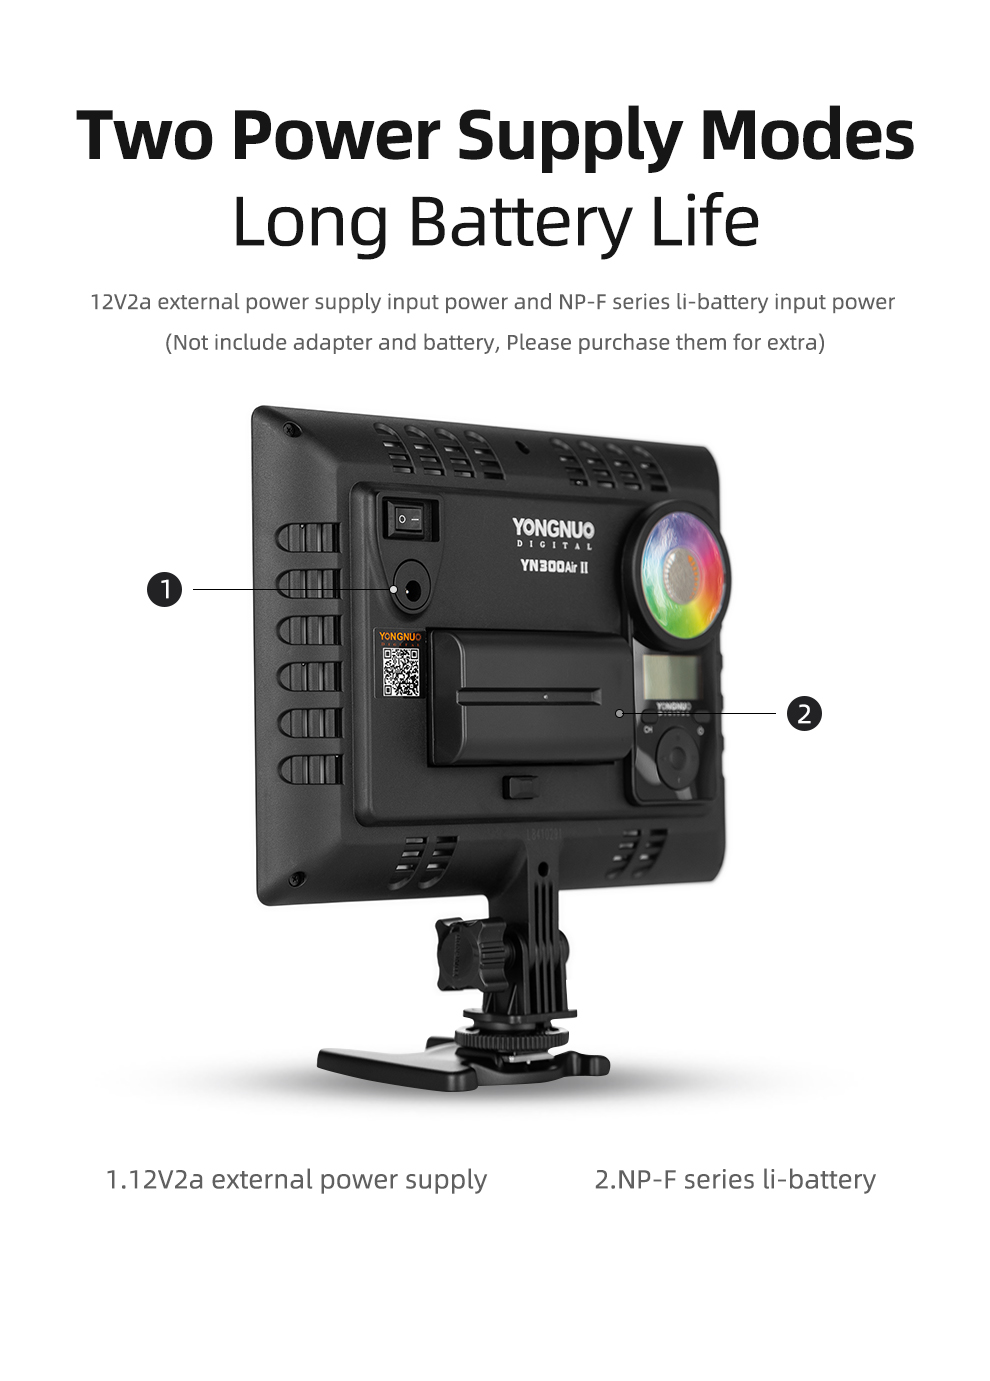 H052af9a53edf4d6b86d137bf37fc65a1M YONGNUO YN300AIR II RGB LED Camera Video Light,Optional Battery with Charger Kit Photography Light + AC adapter